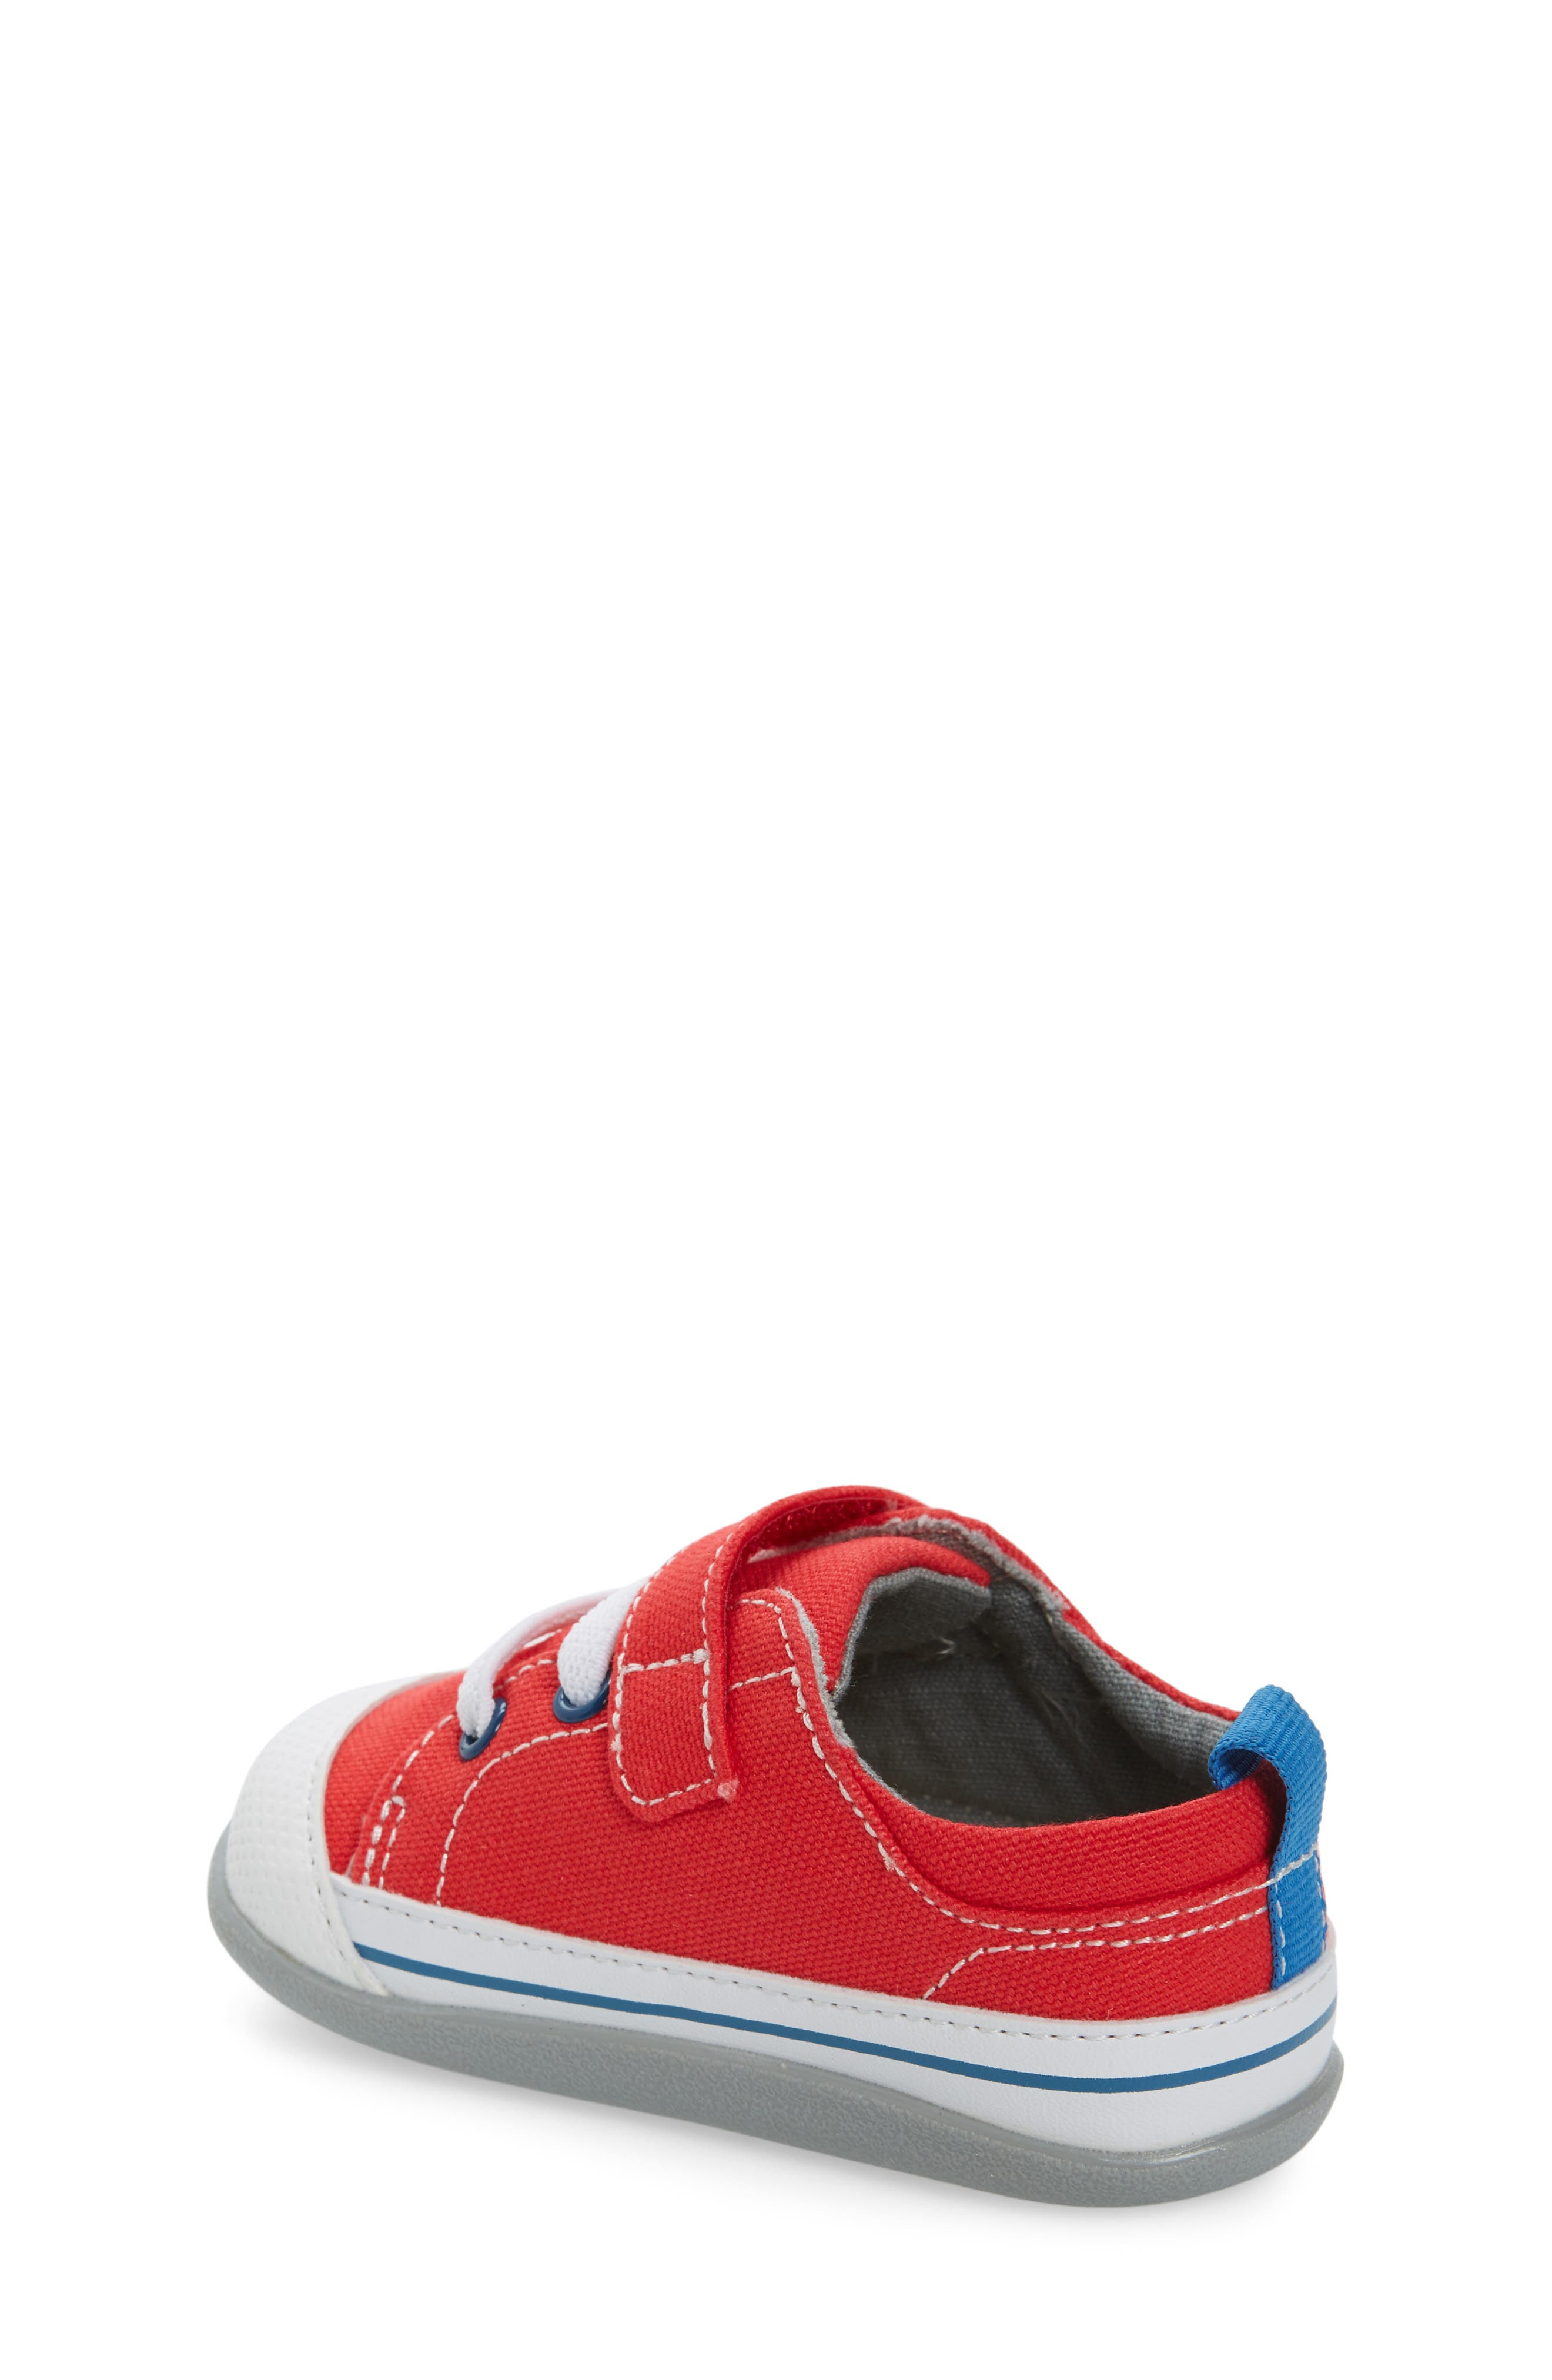 Stevie II Sneaker,                             Alternate thumbnail 2, color,                             RED CANVAS